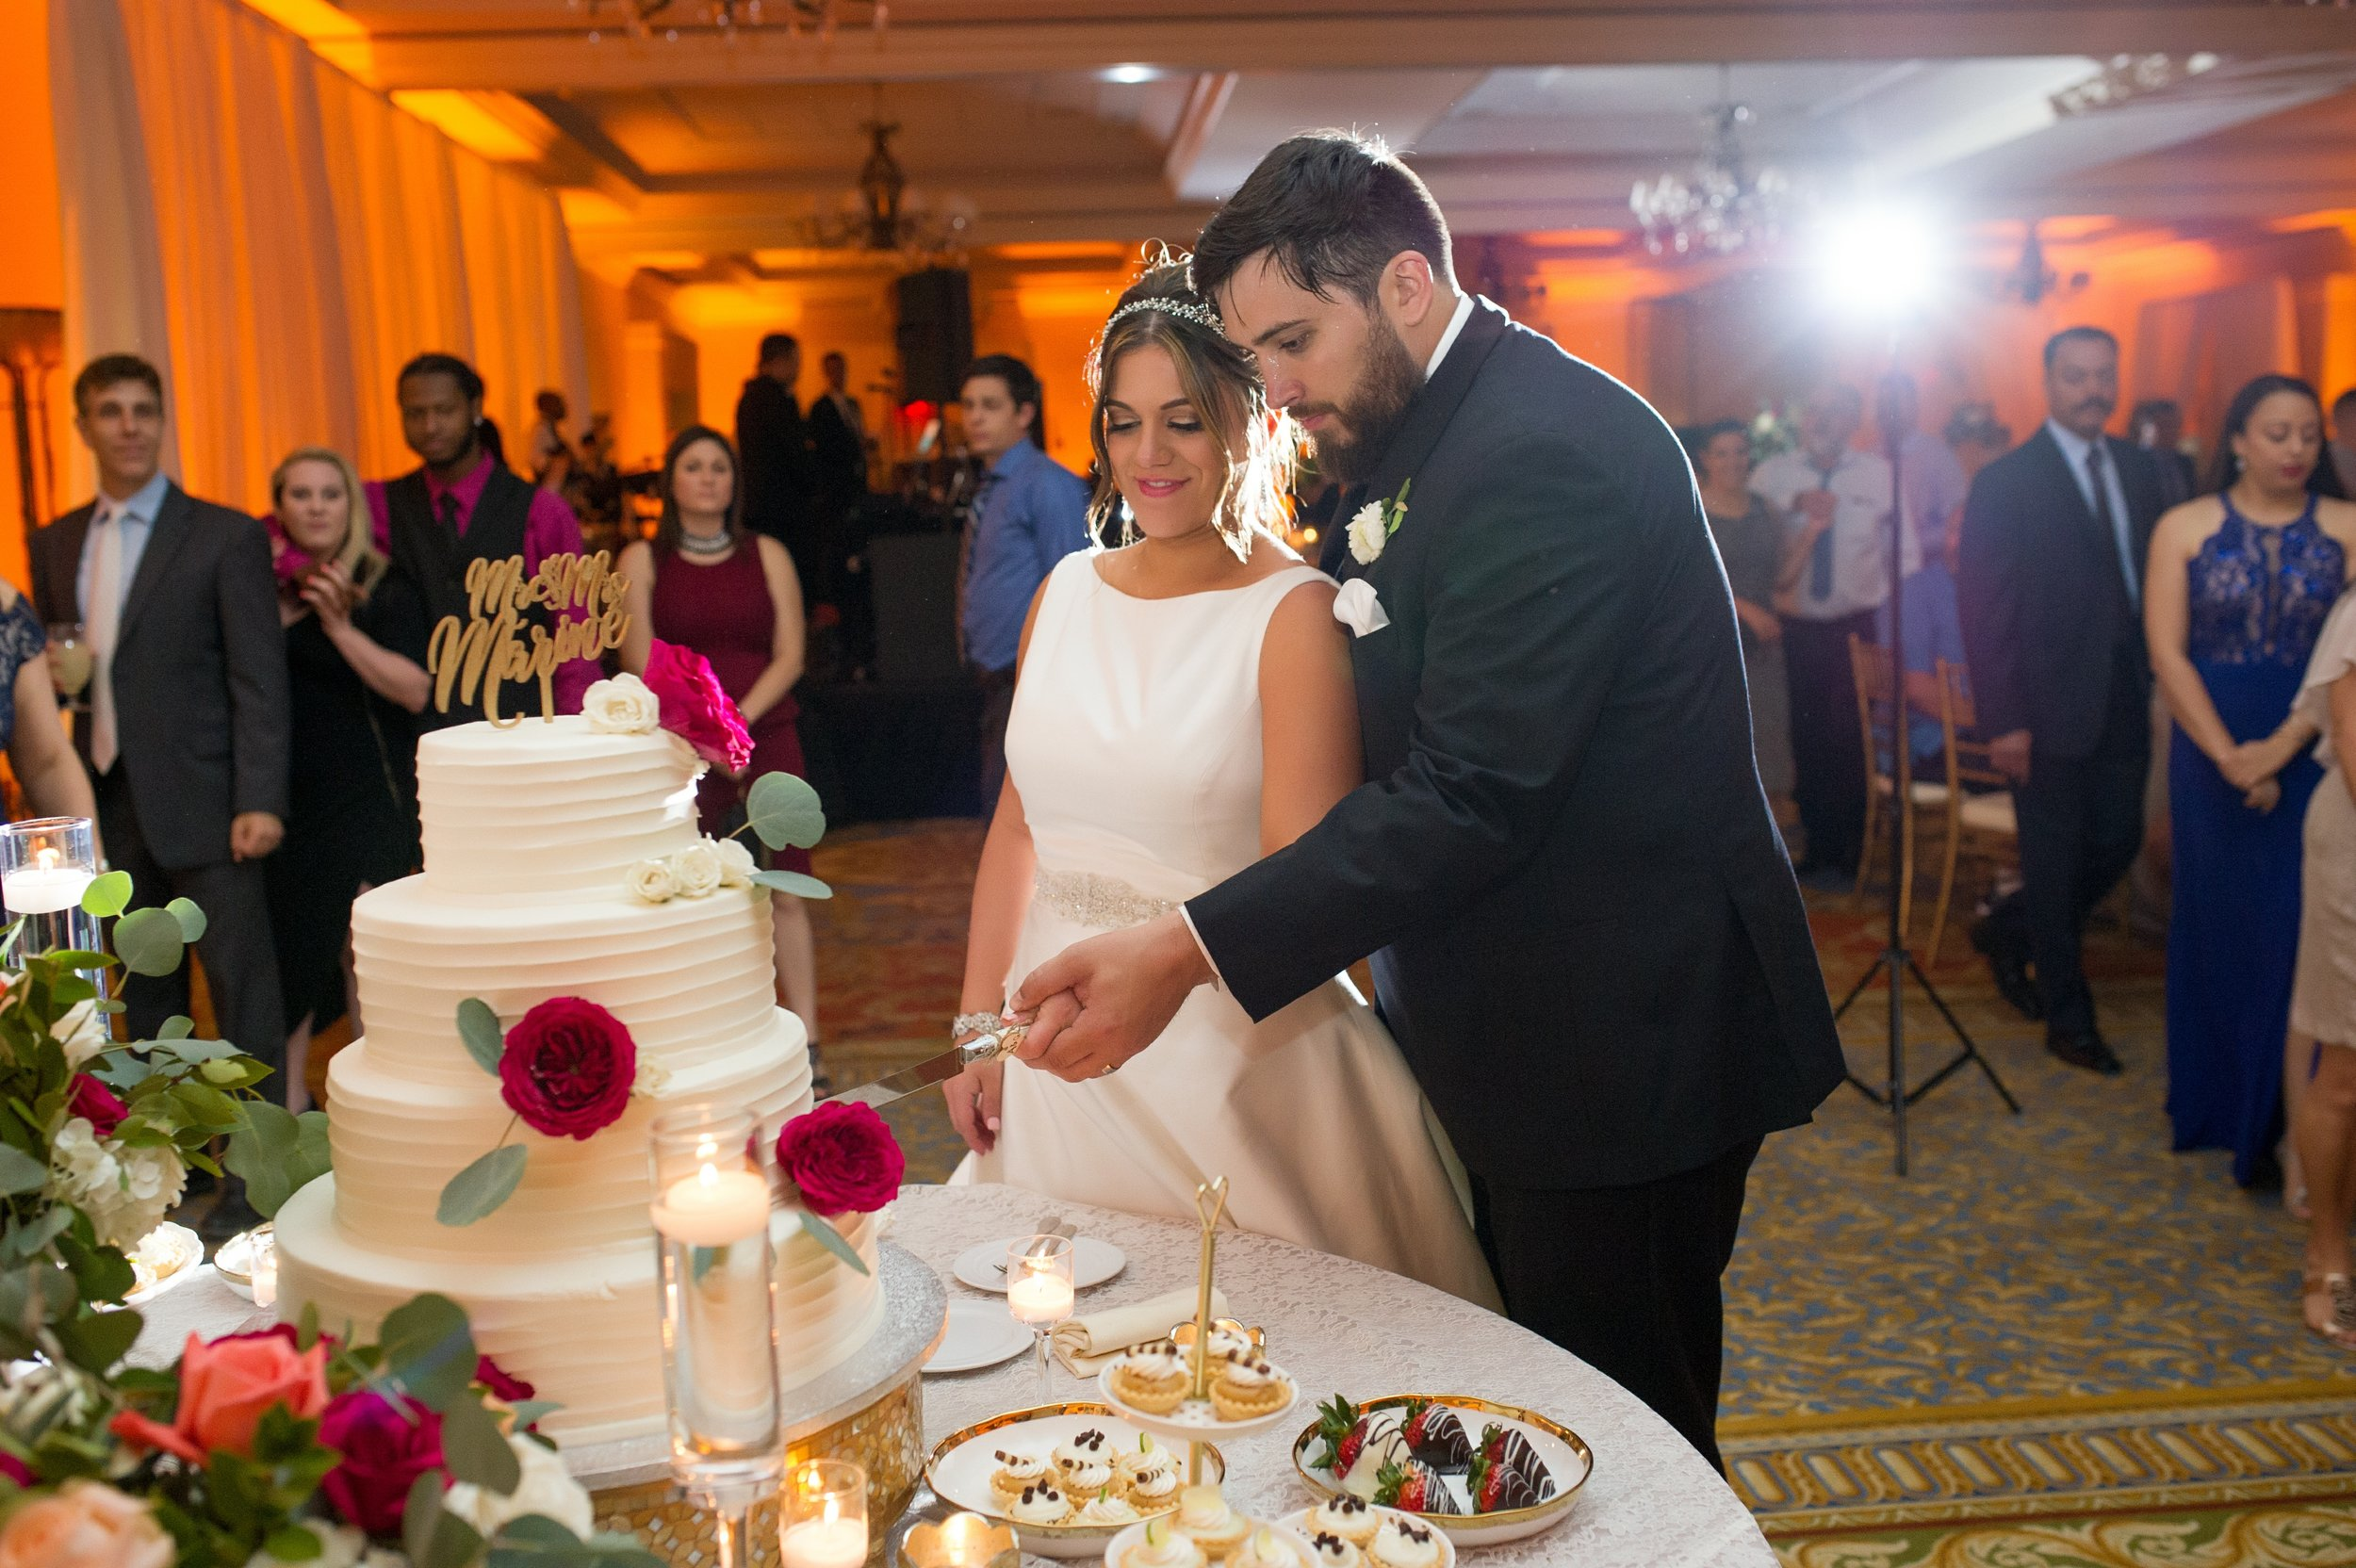 The cake was displayed on a gold mosaic cake stand and was surrounded with delicate trays of mini desserts, and abundant florals.